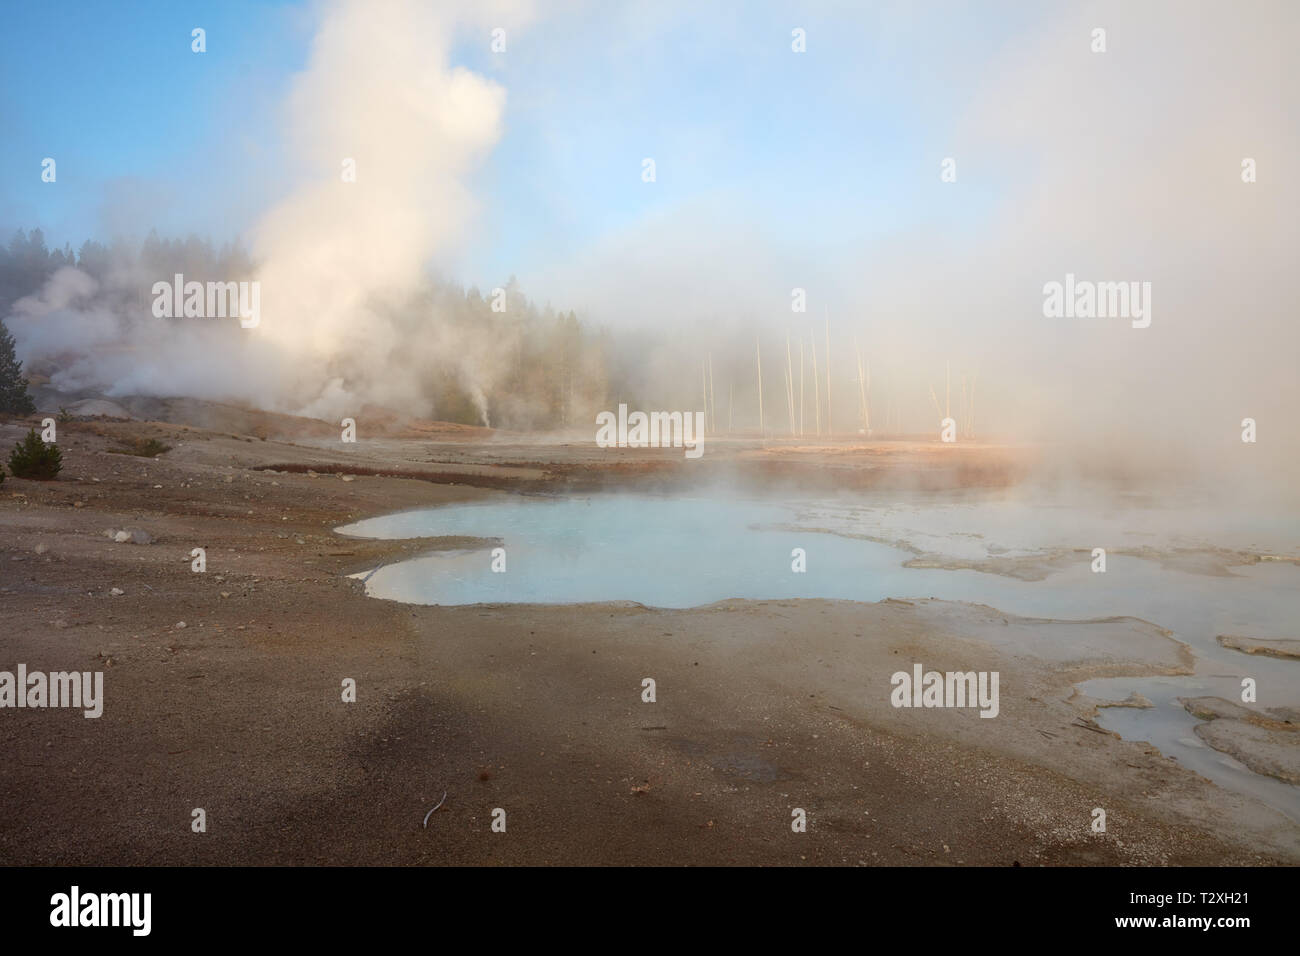 Thermal spring and fumaroles in Norris Geyser Basin, Yellowstone National Park - Stock Image